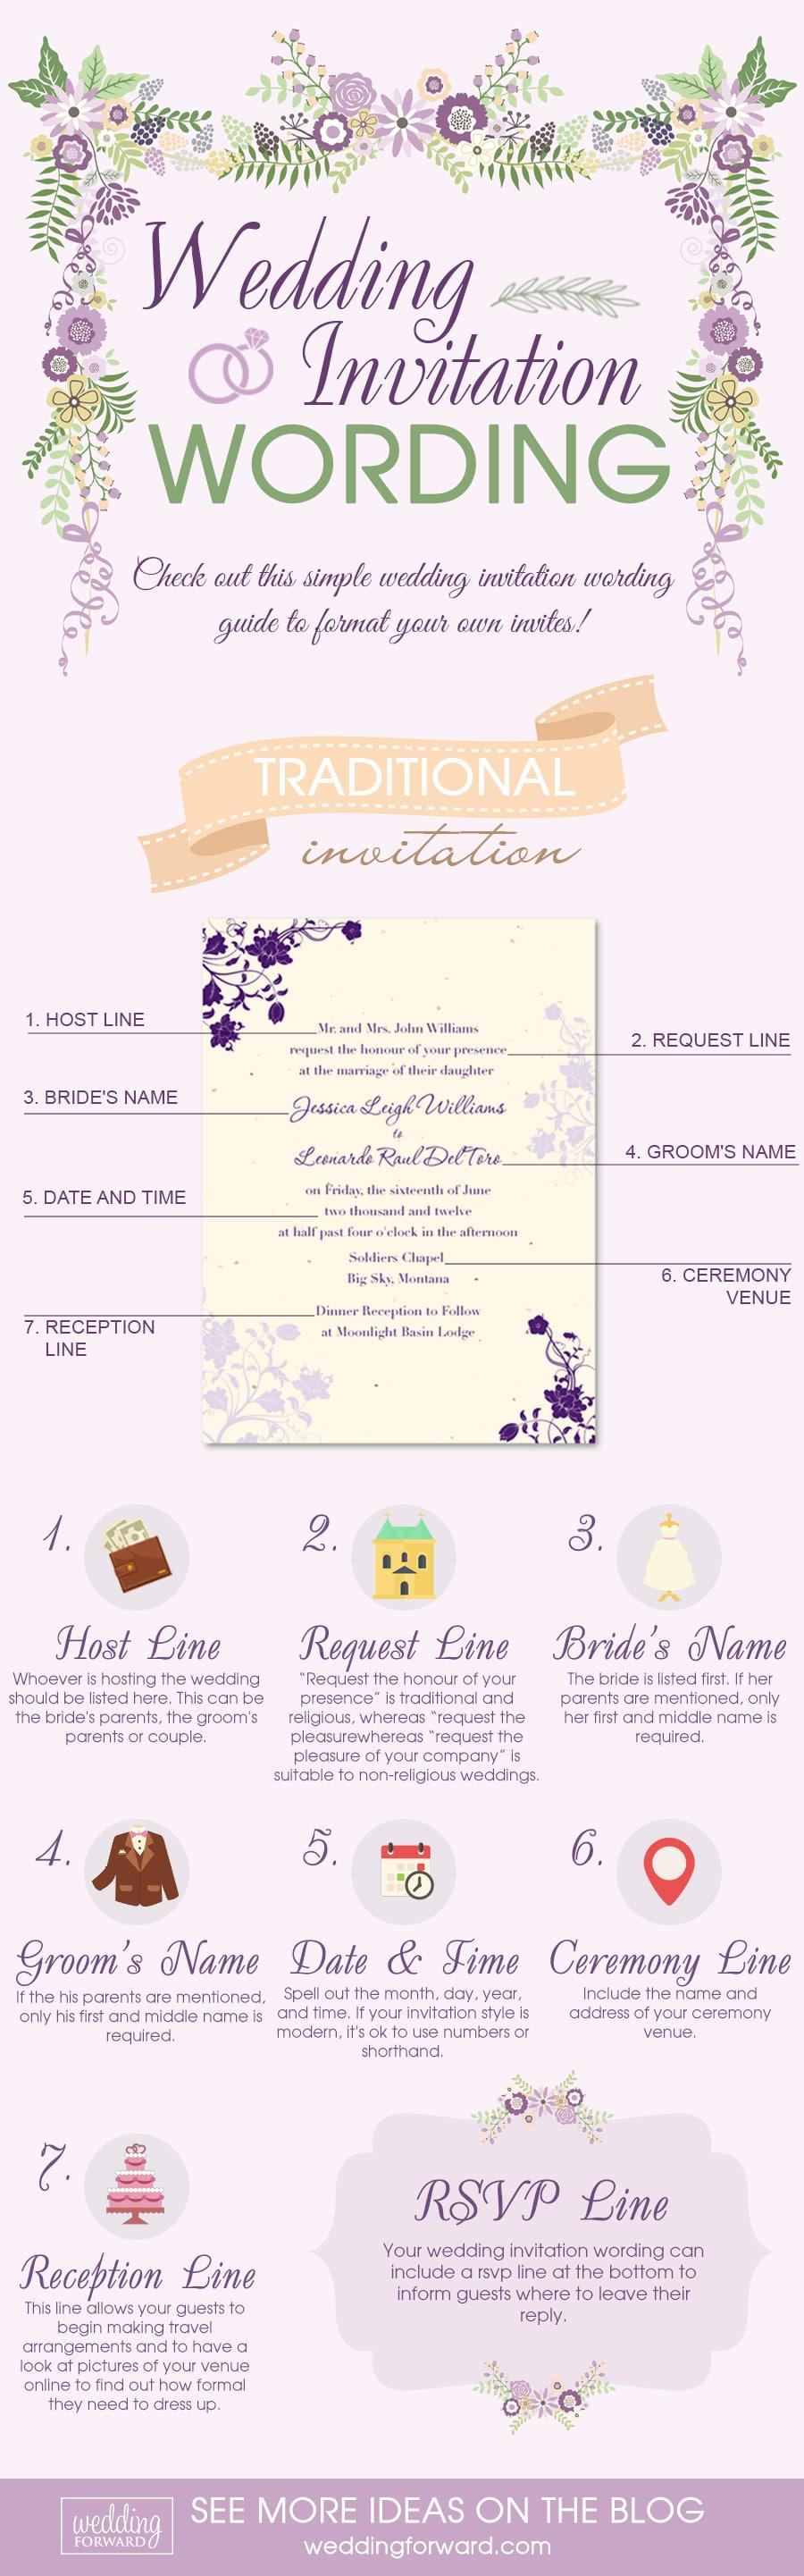 Wedding Invite Wording From Bride And Groom.25 Wedding Invitation Wording Examples And Details Wedding Forward